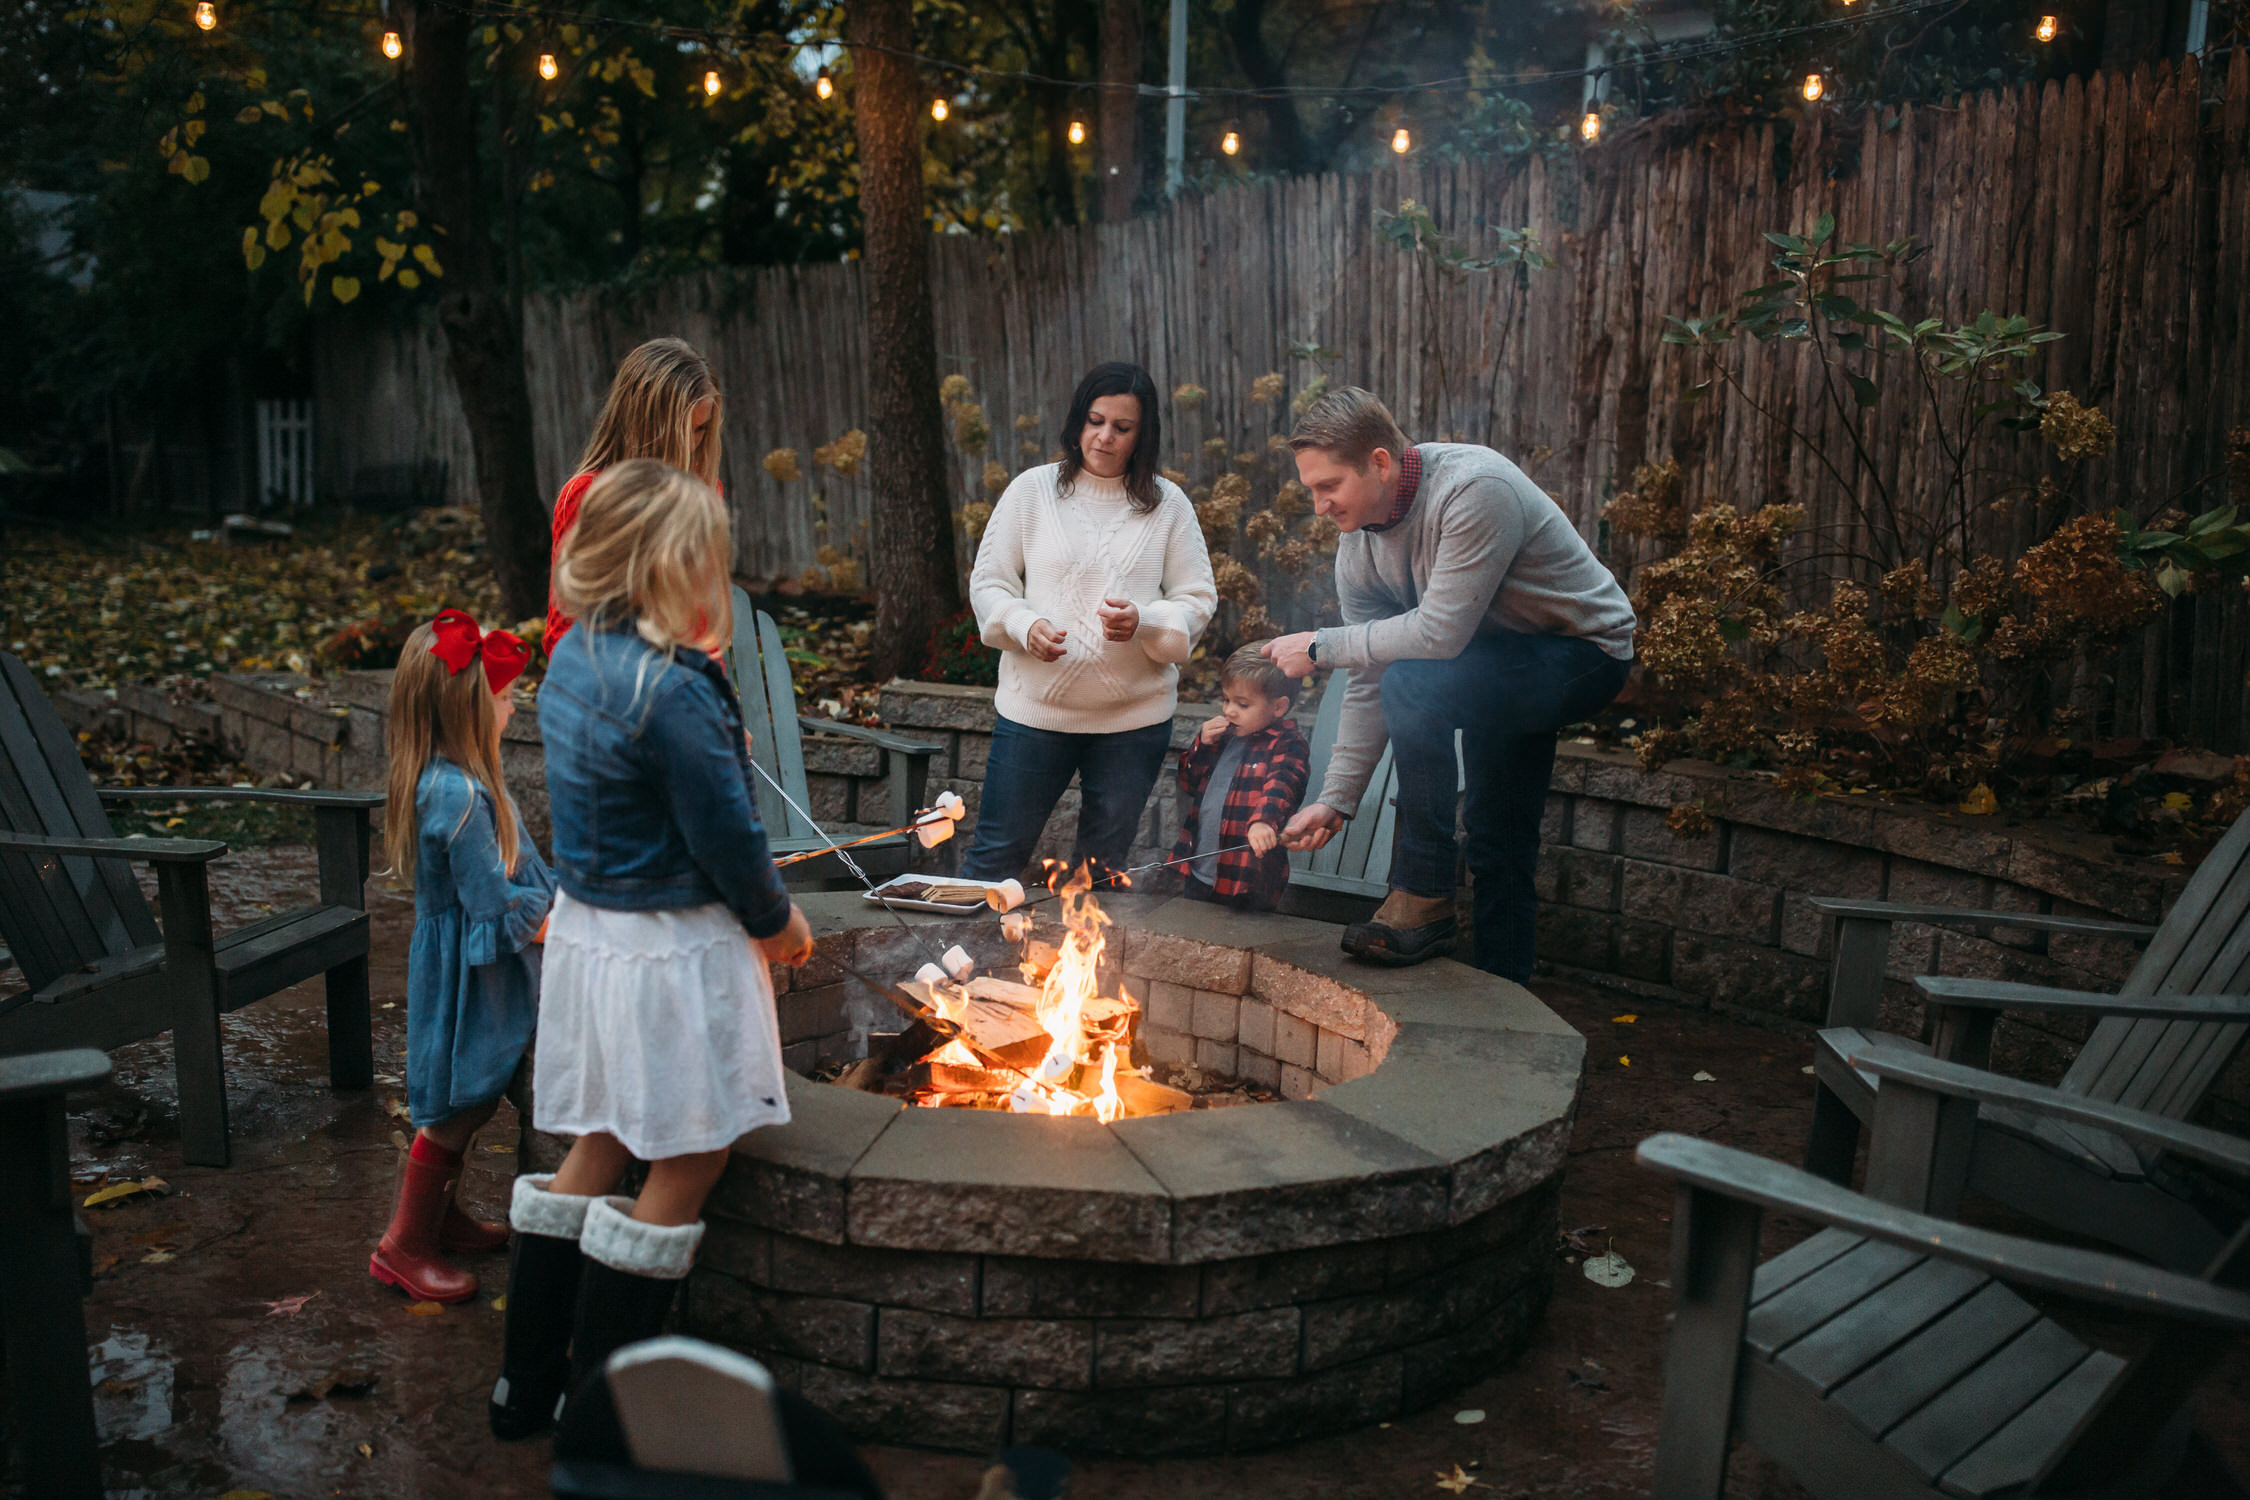 Camping and making s'mores as a family, family adventure, back yard family photos